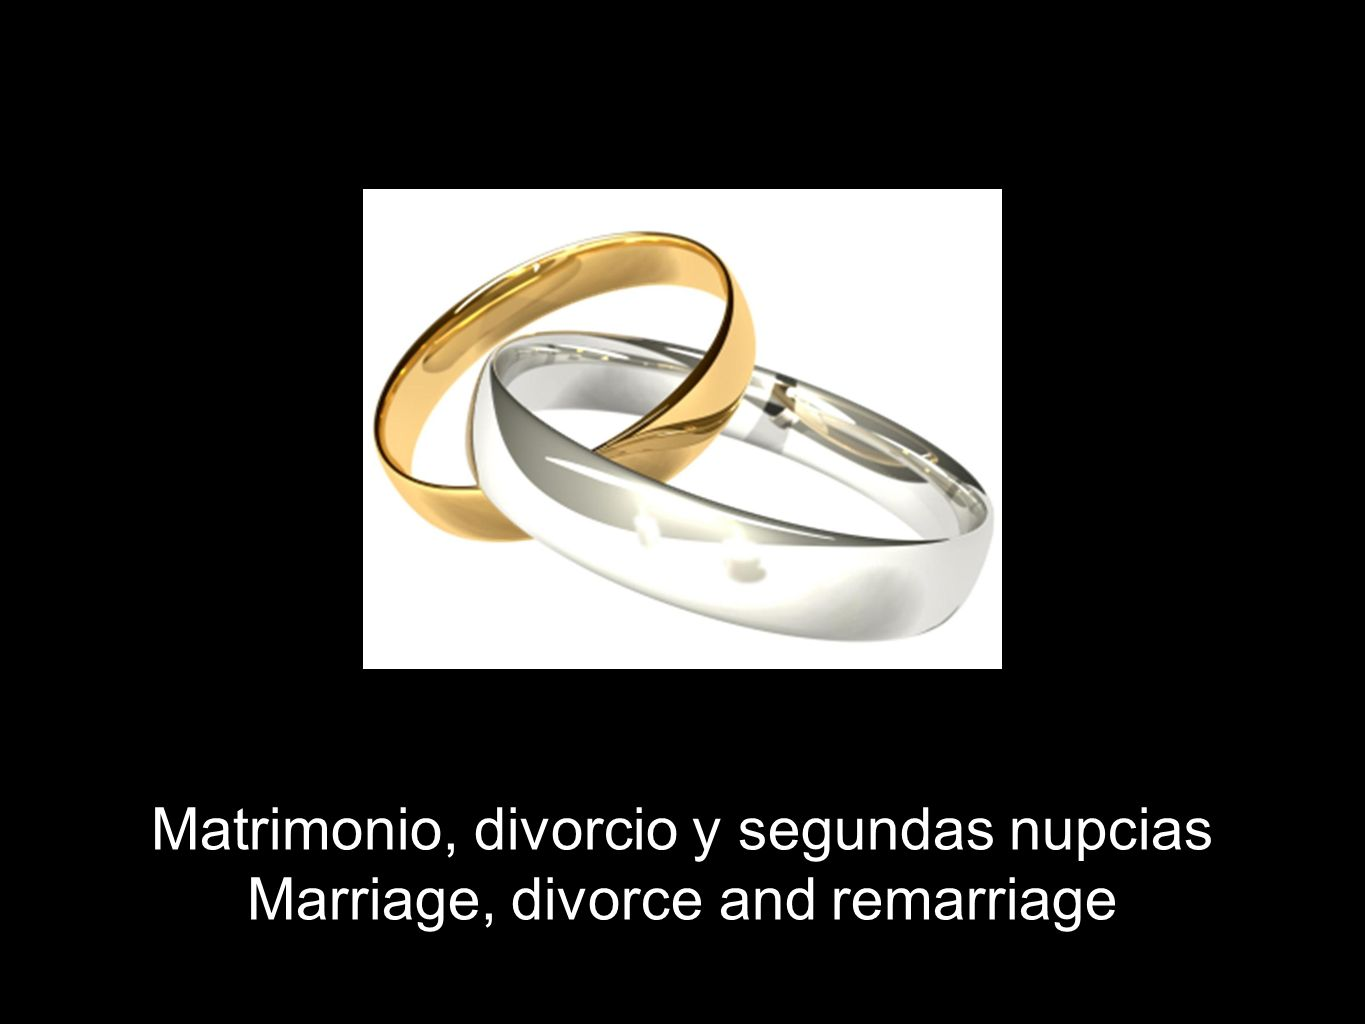 Matrimonio, divorcio y segundas nupcias Marriage, divorce and remarriage